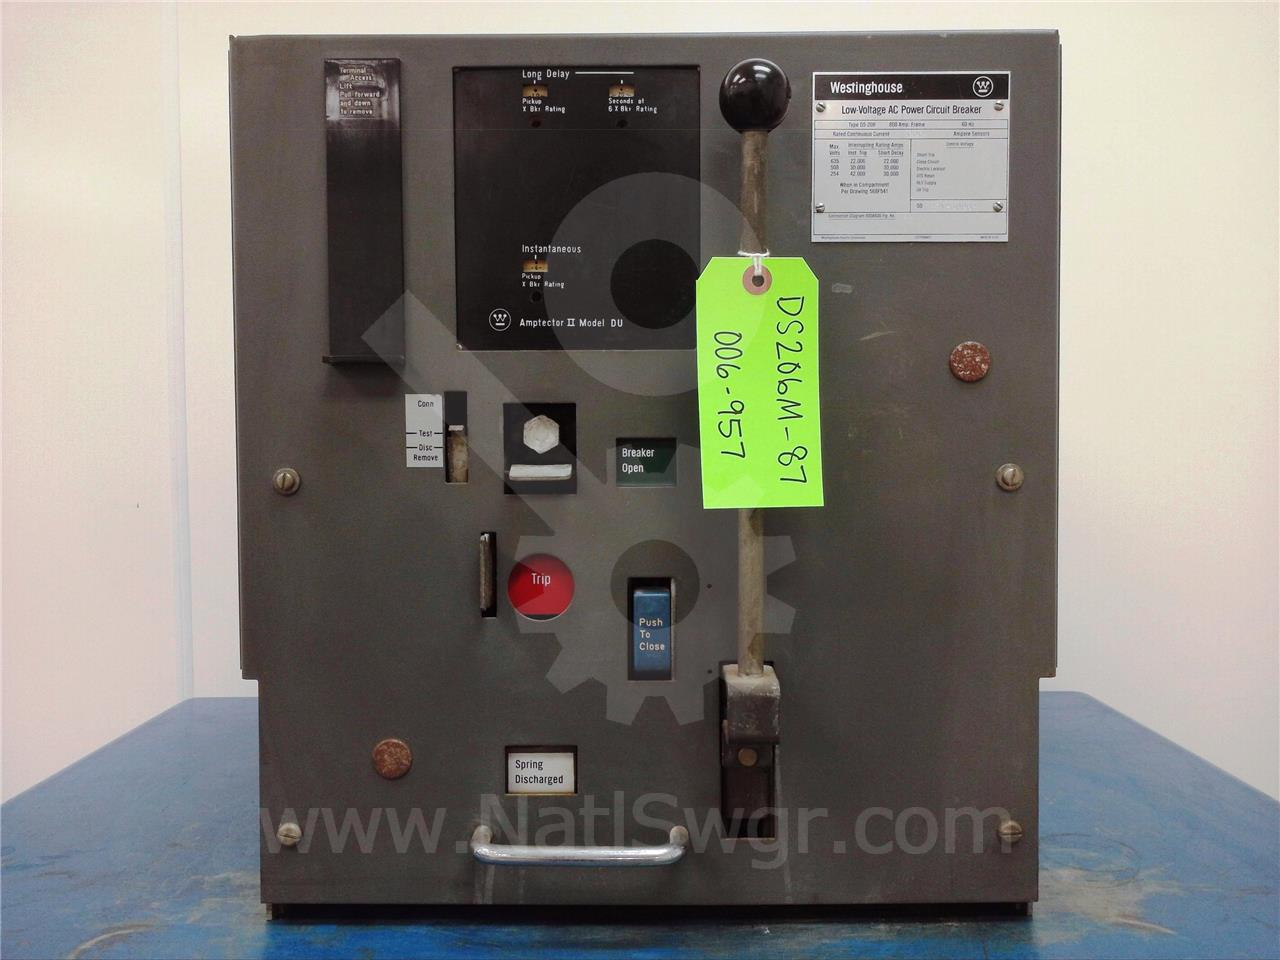 DS-206 800A Westinghouse MO/DO AMPTECTOR II DU LI, 600A CT